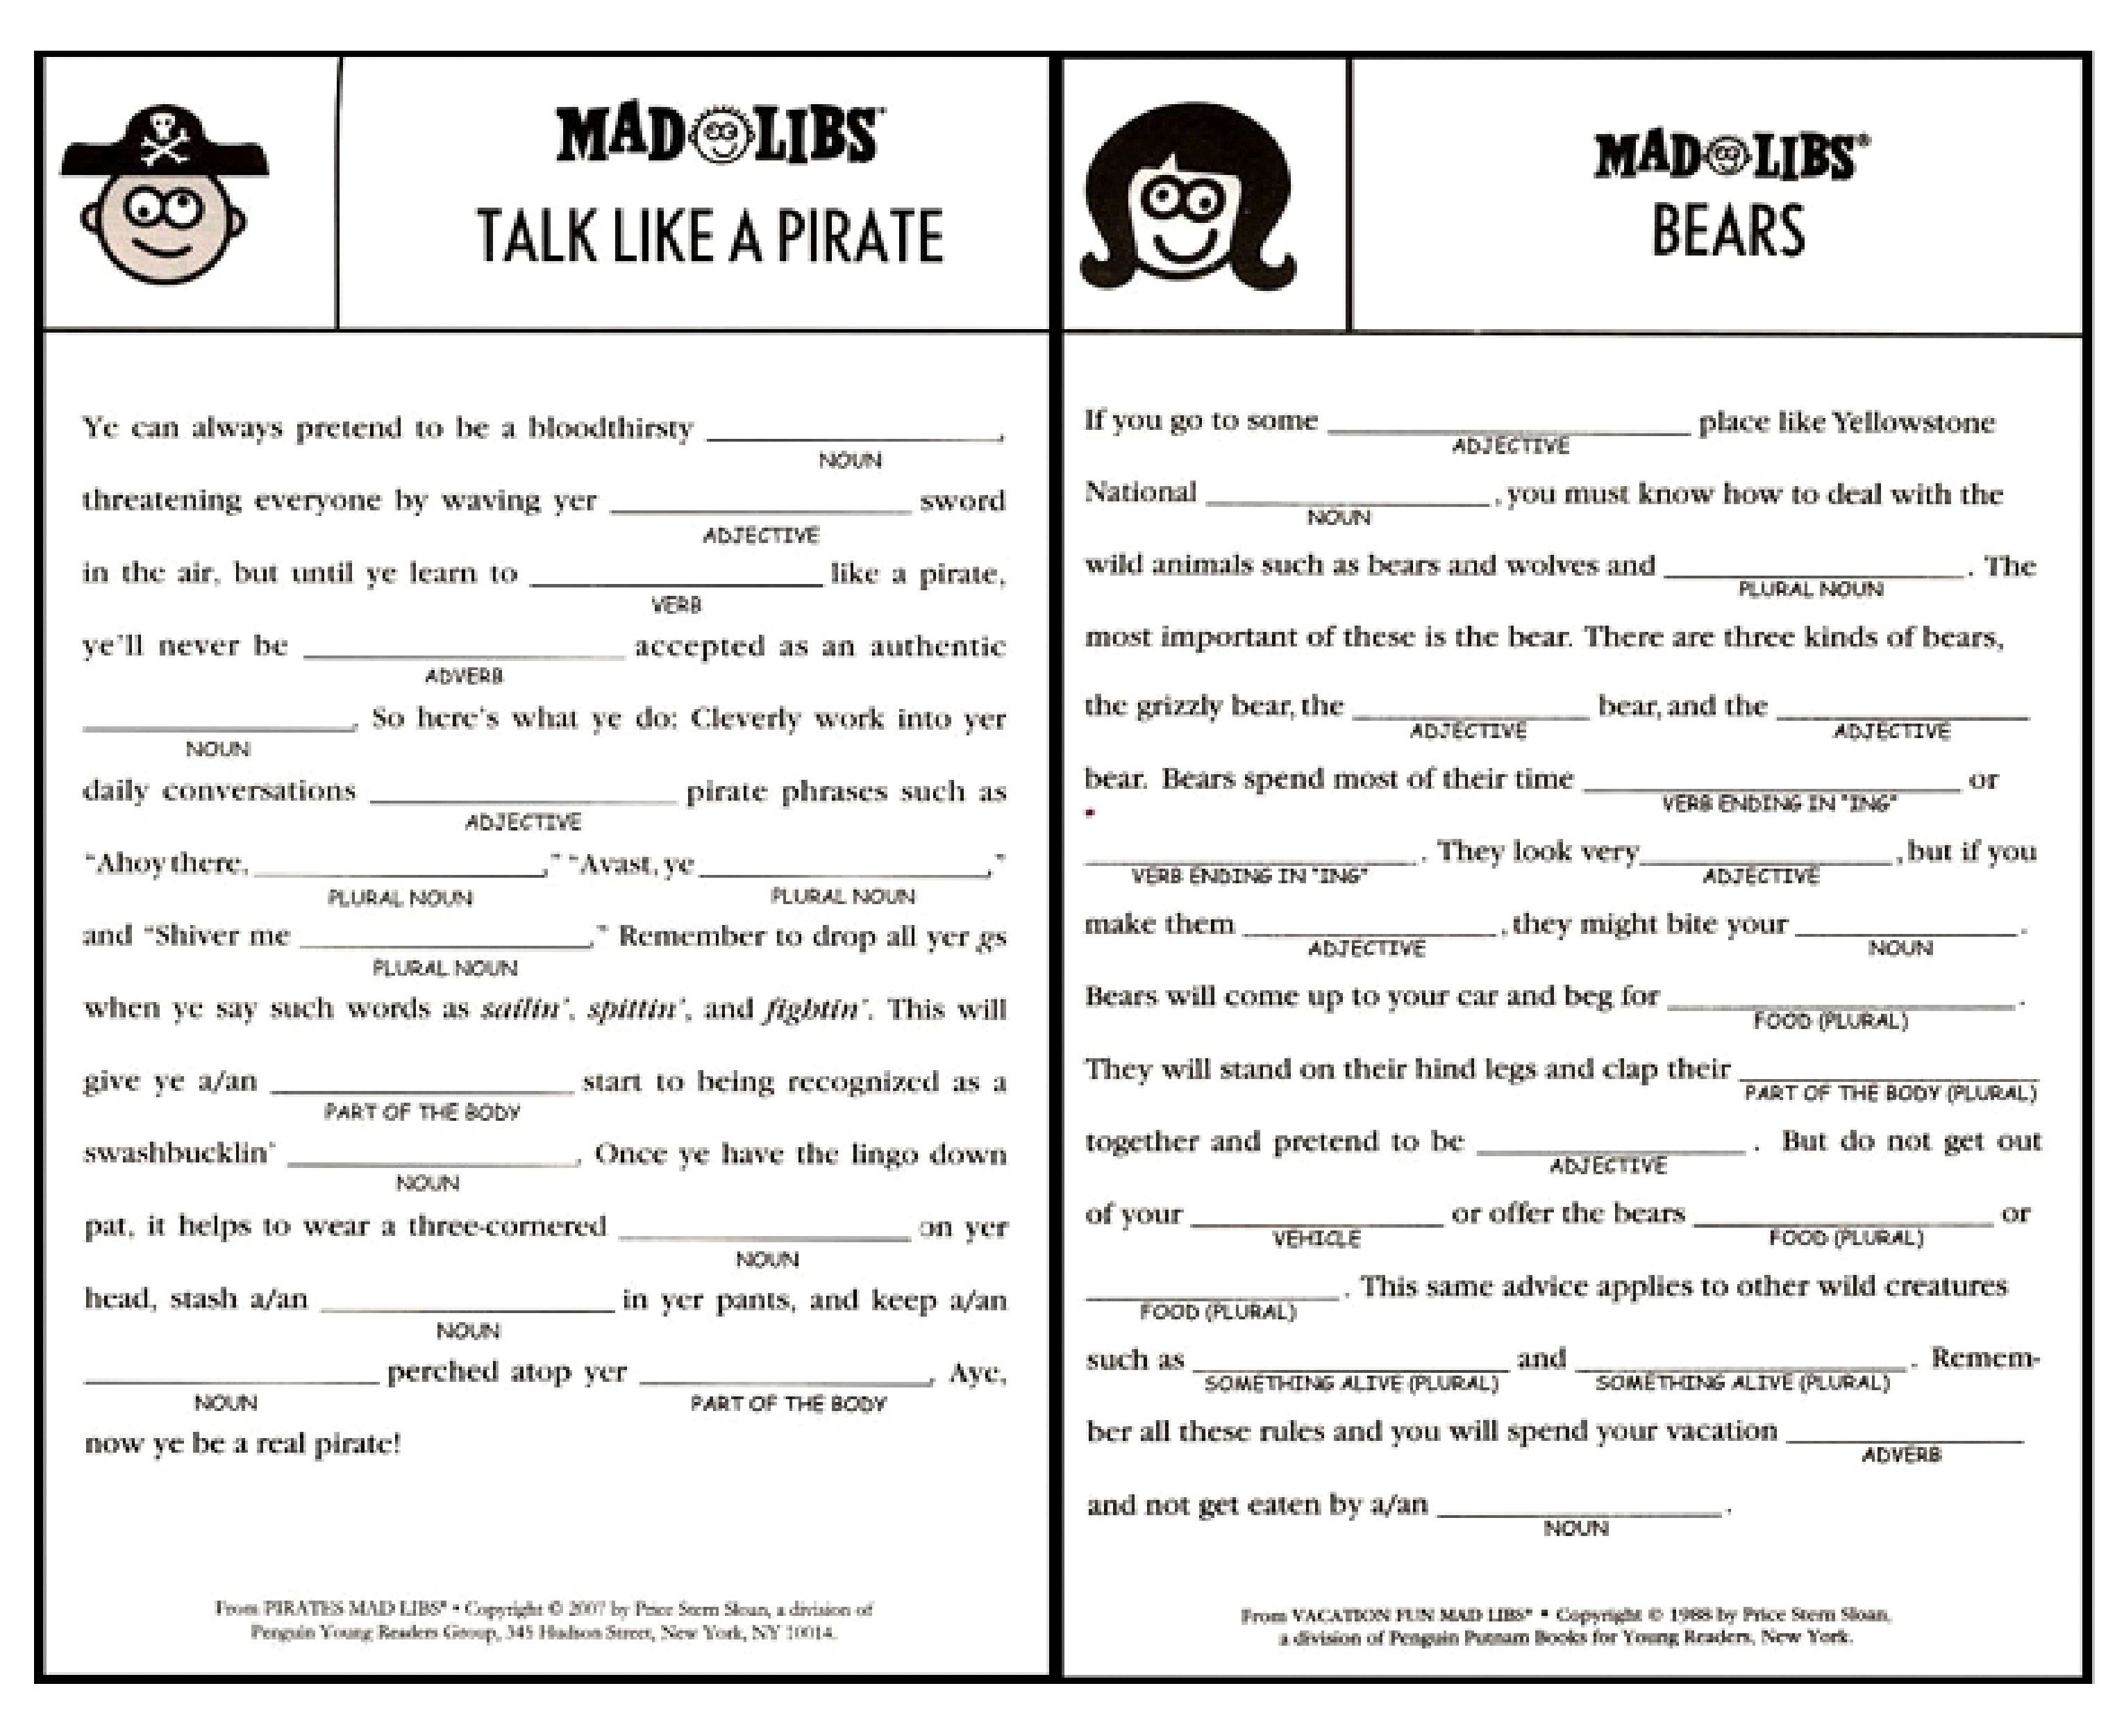 Printable Mad Libs Sheets For Adults - Google Search | Camping - Free Printable Mad Libs